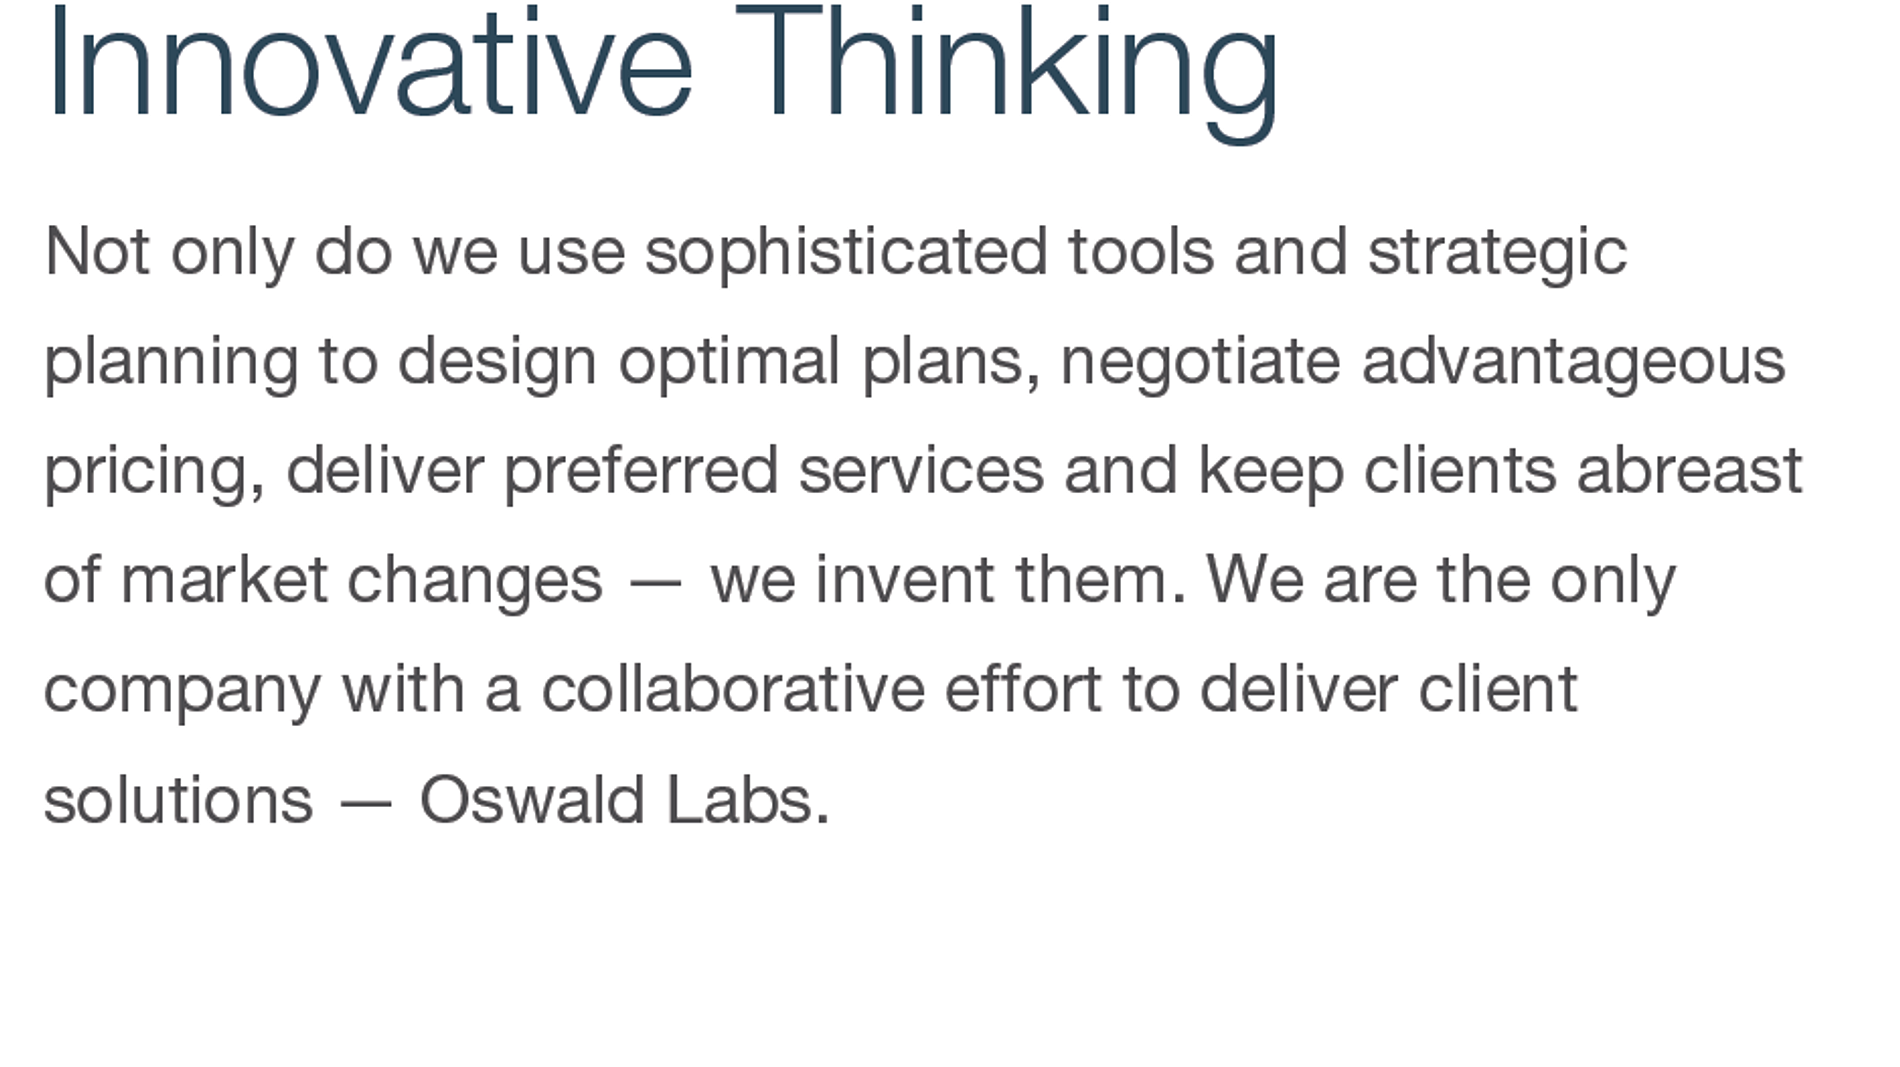 Innovative Thinking. Not only do we use sophisticated tools and strategic planning to design optimal plans, negotiate advantageous pricing, deliver preferred services and keep clients abreast of market changes — we invent them. We are the only company with a collaborative effort to deliver client solutions — Oswald Labs.